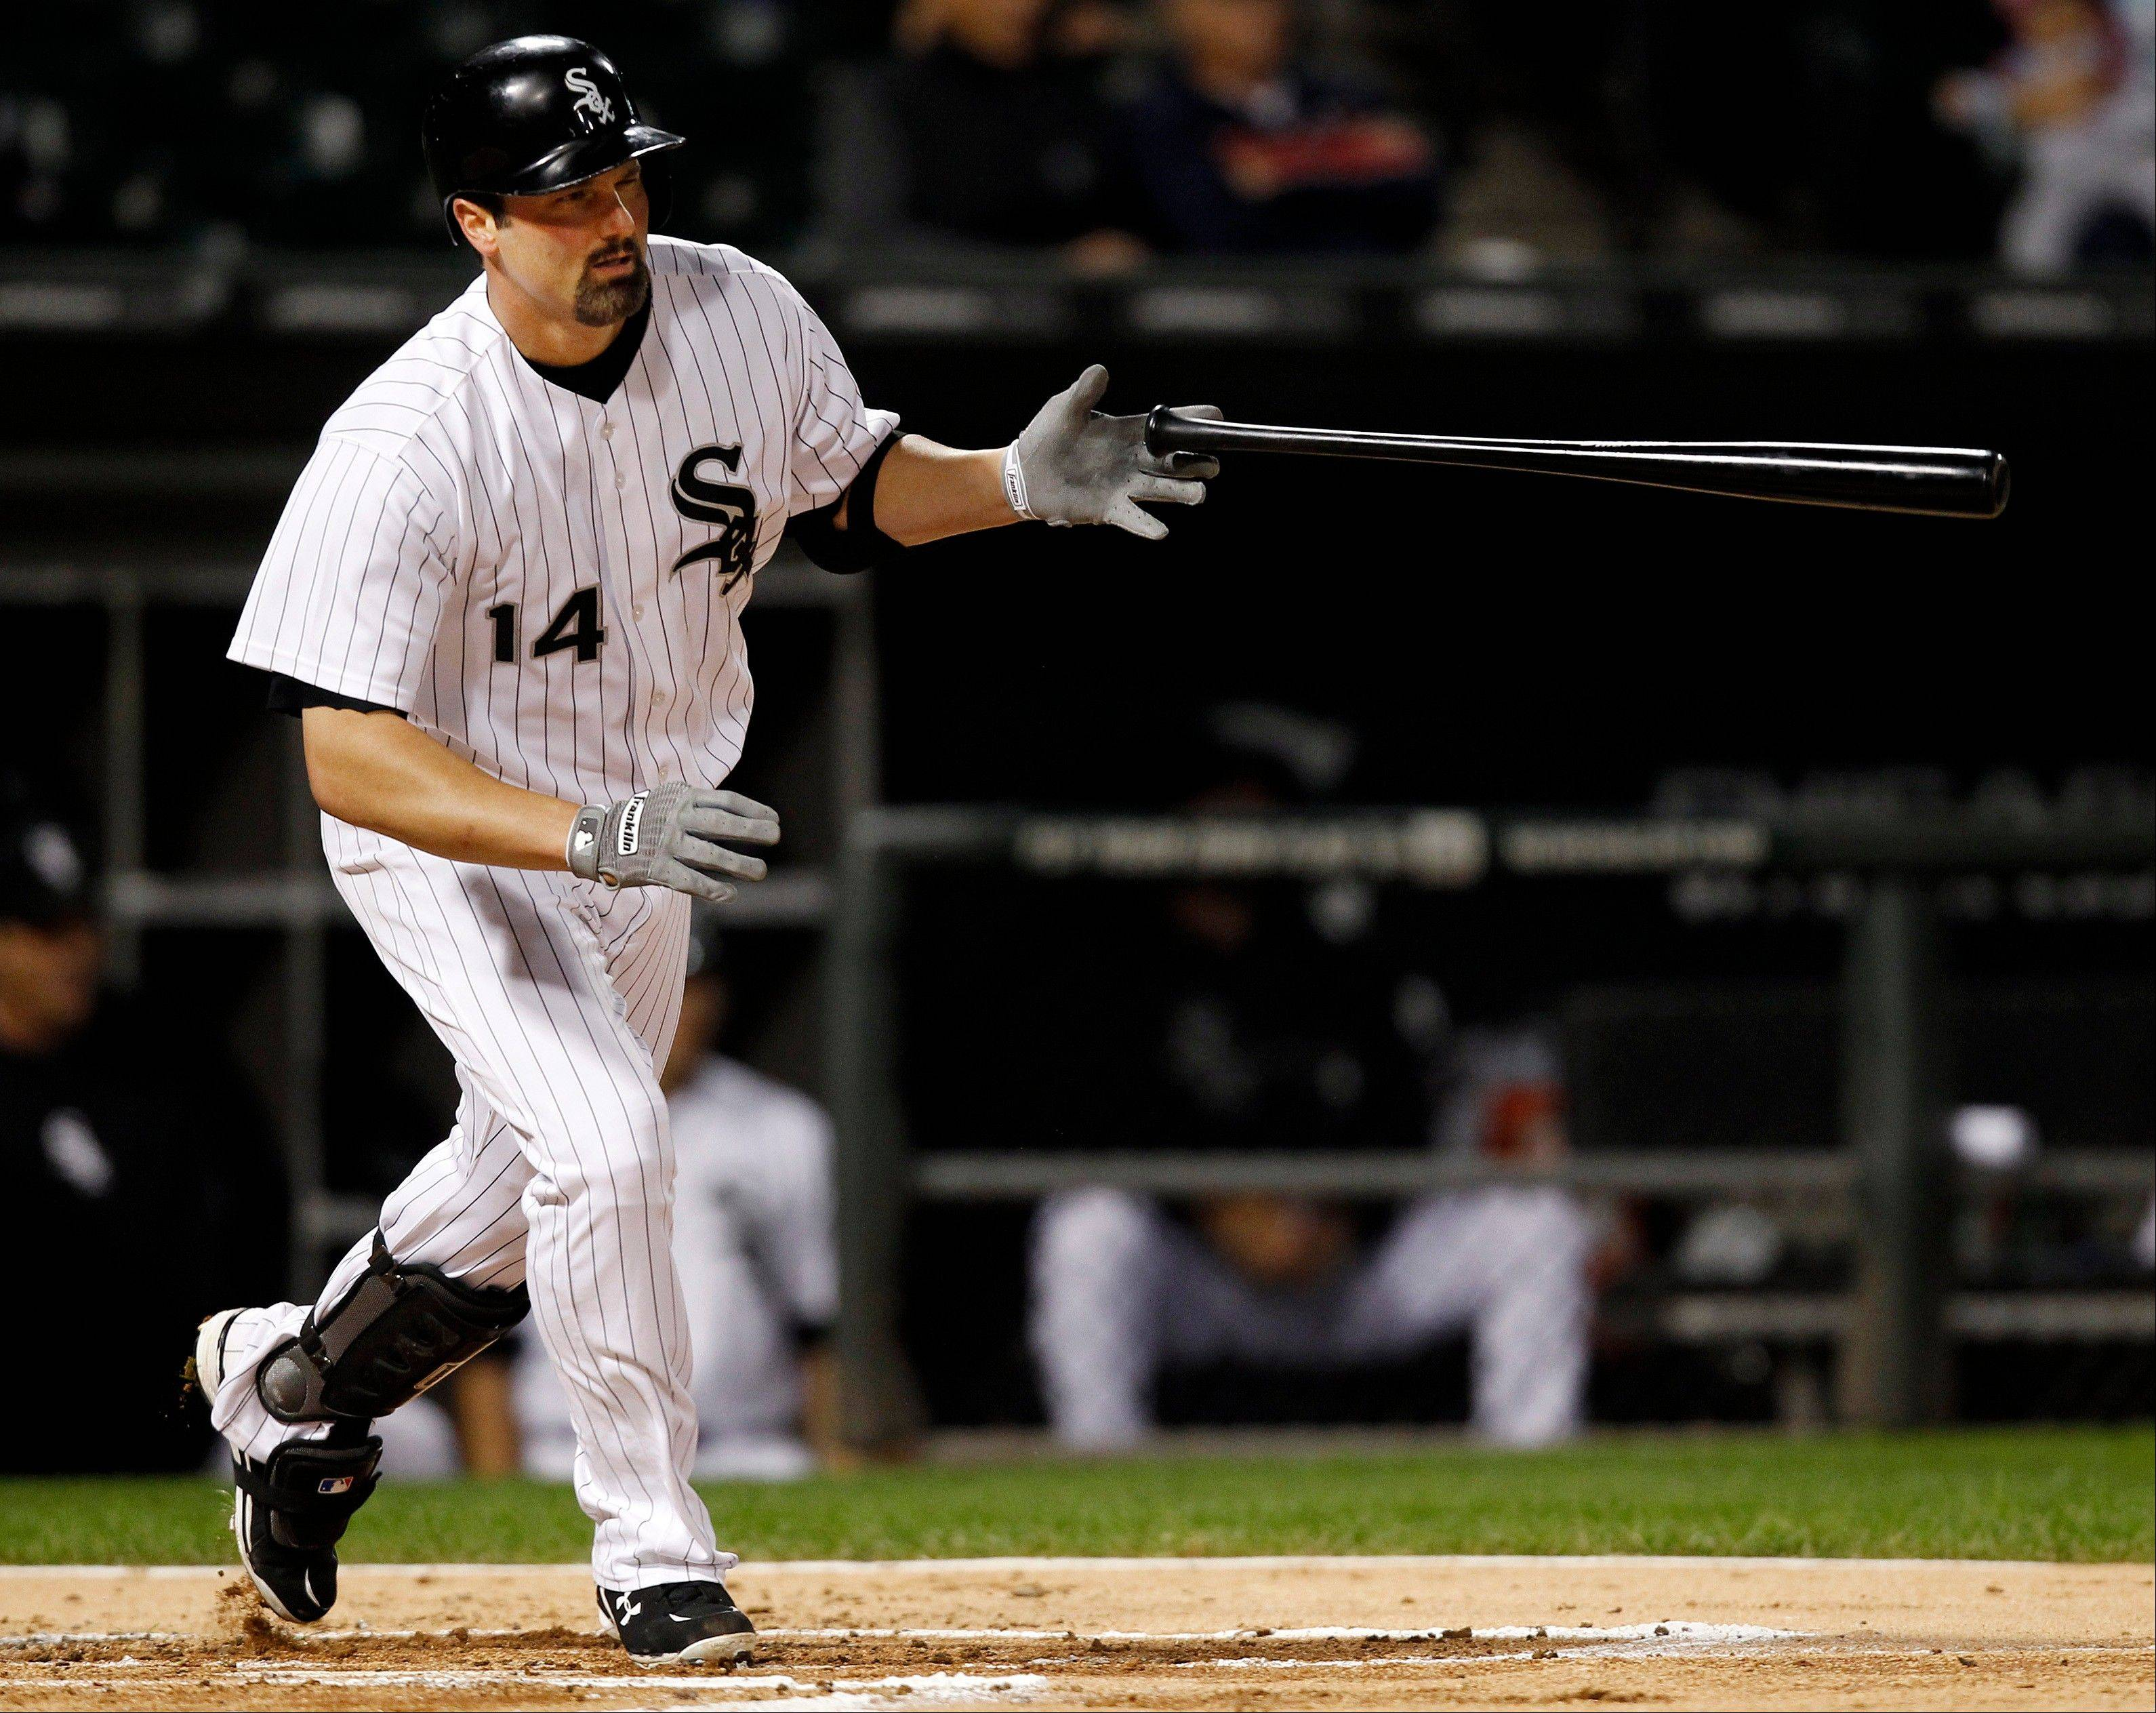 Paul Konerko hits a single in Monday night's White Sox victory over Toronto at U.S. Cellular Field.